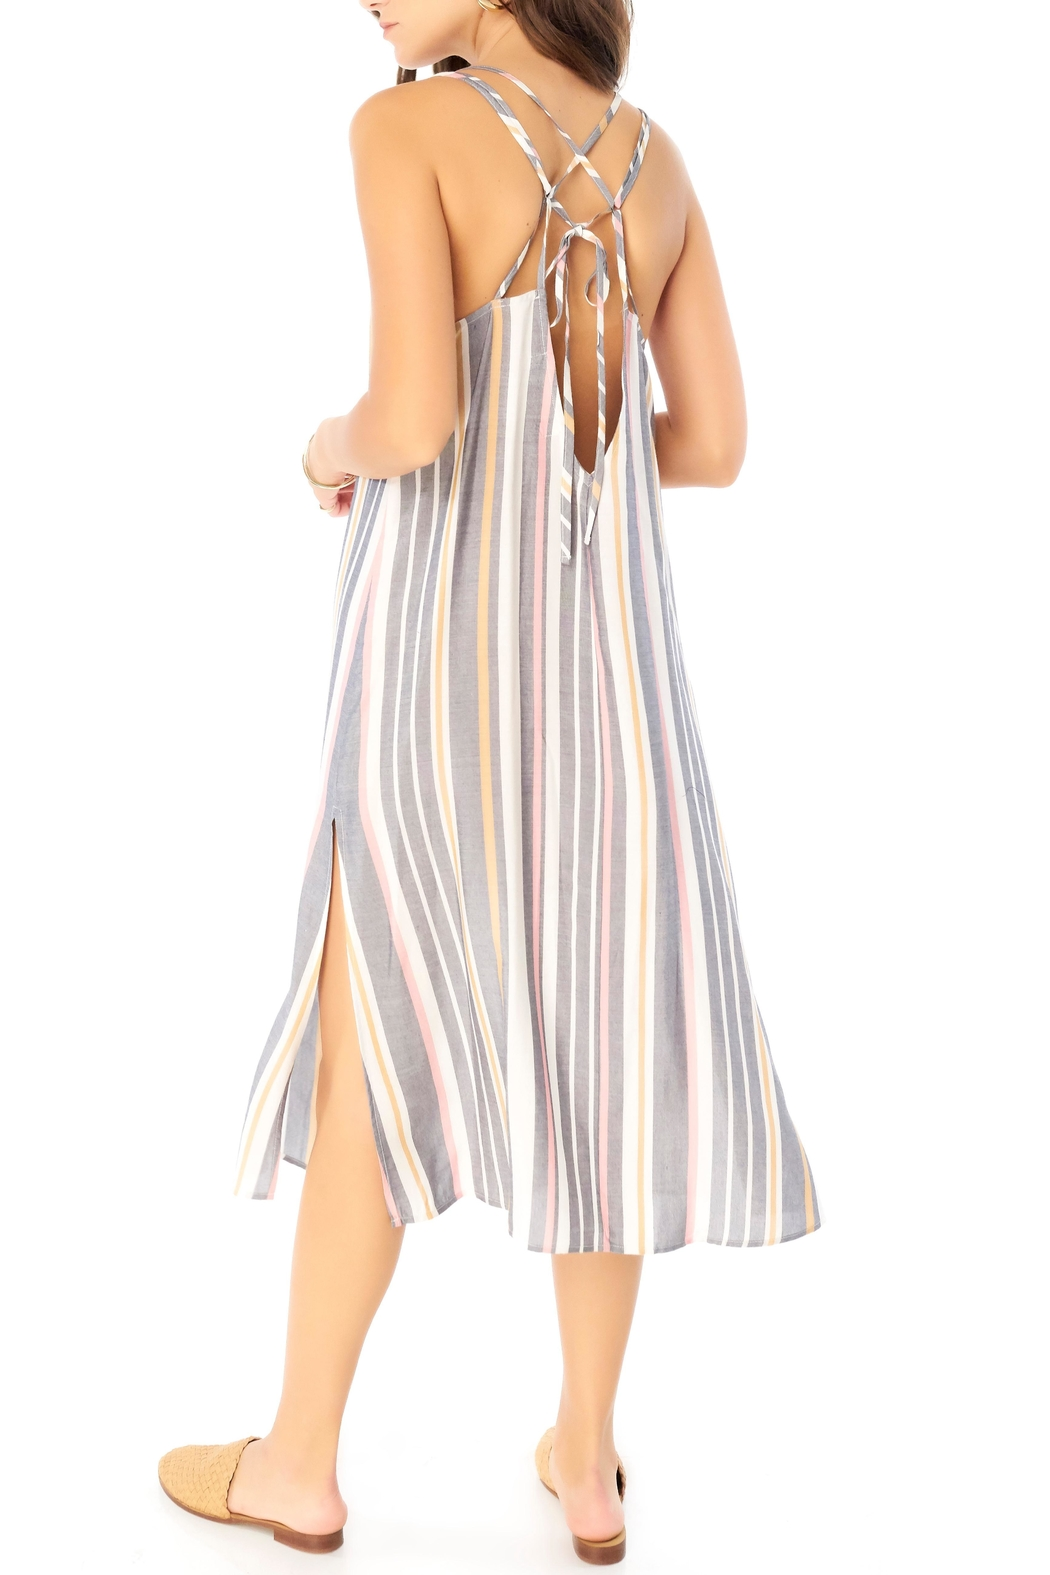 Saltwater Luxe Striped Midi Dress - Front Full Image